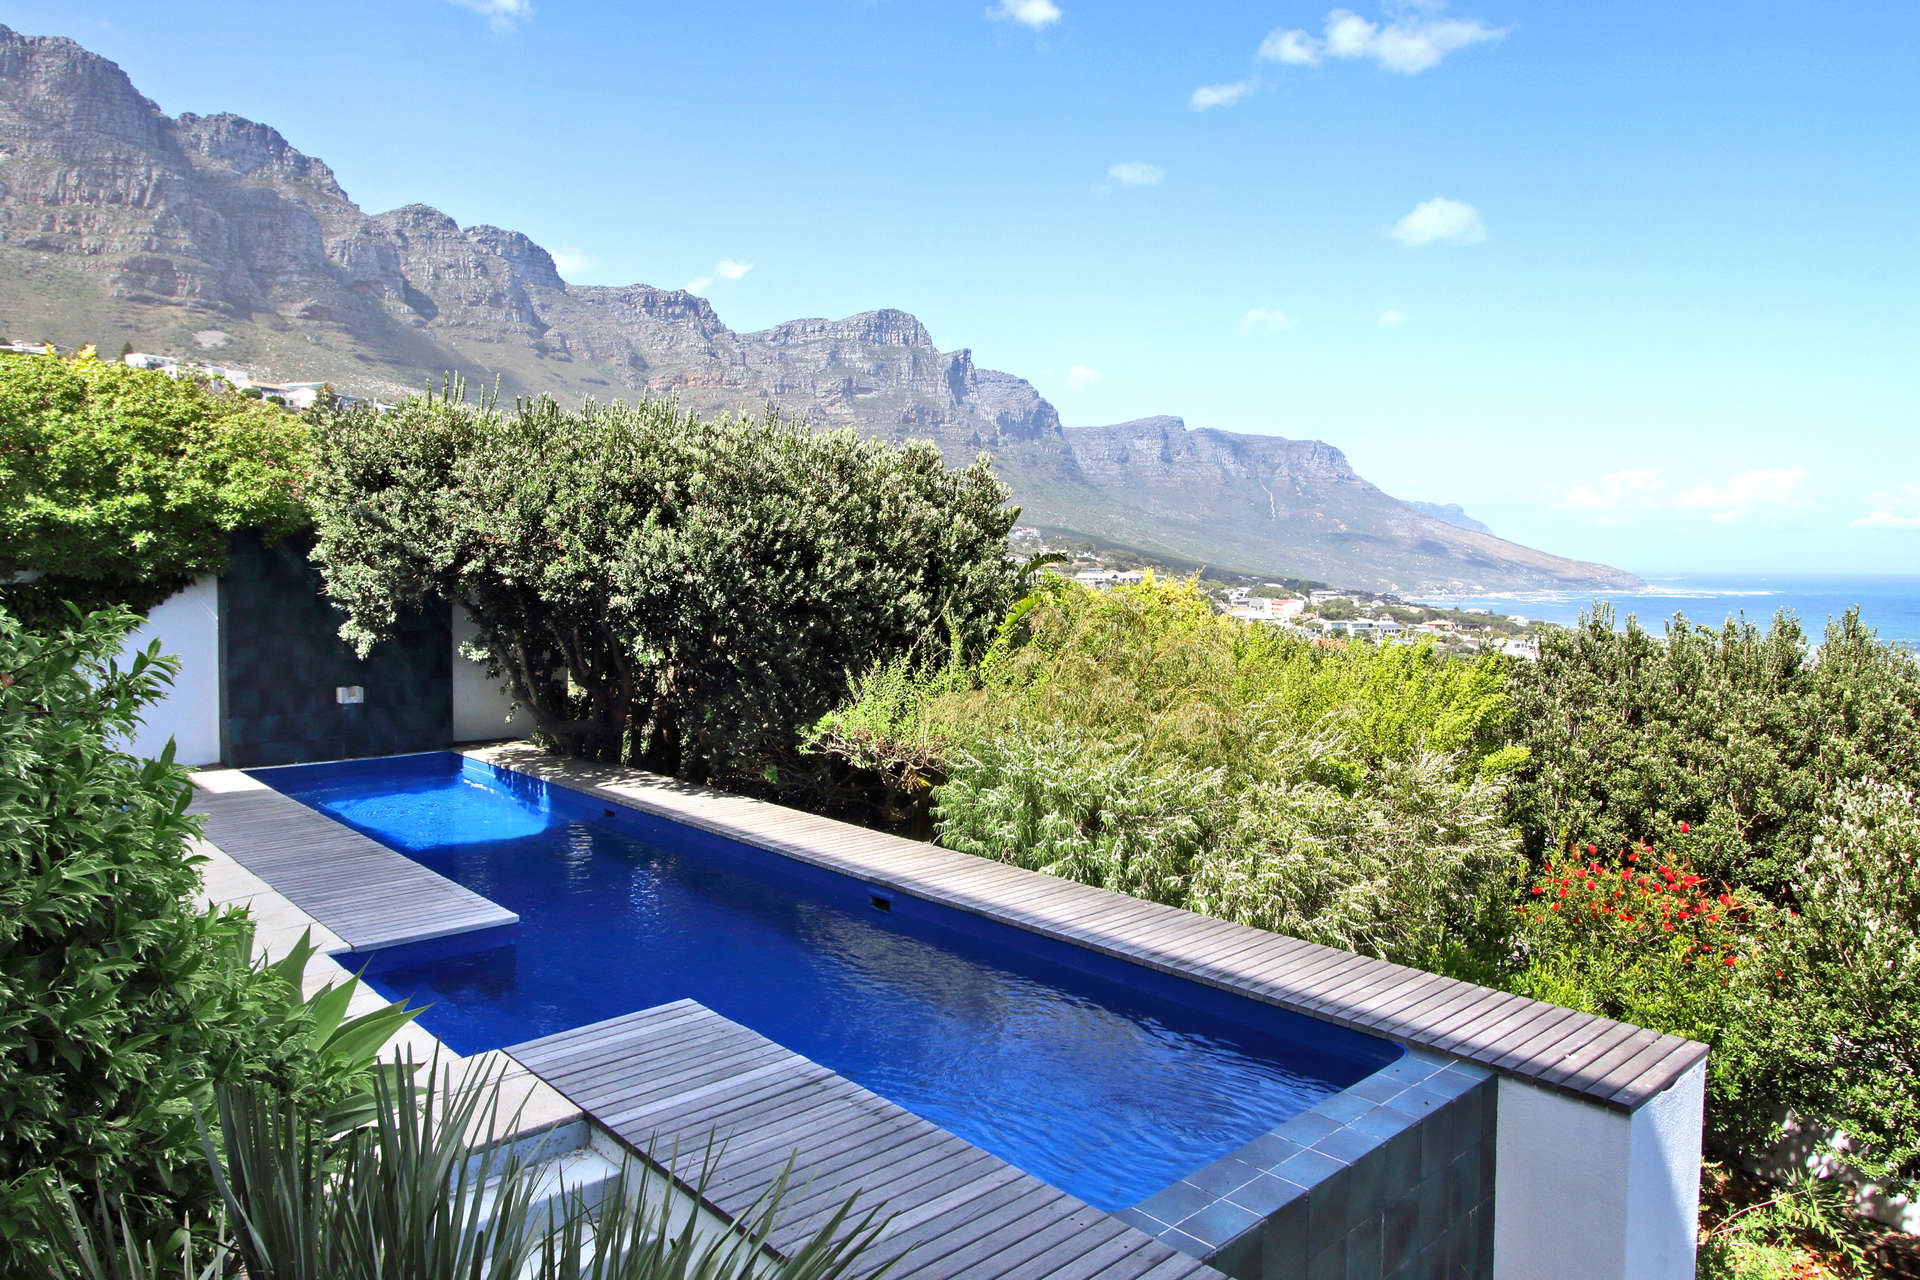 Luxury villa rentals africa - South africa - Capetown - Camps bay ct - Estate Picasso - Image 1/35